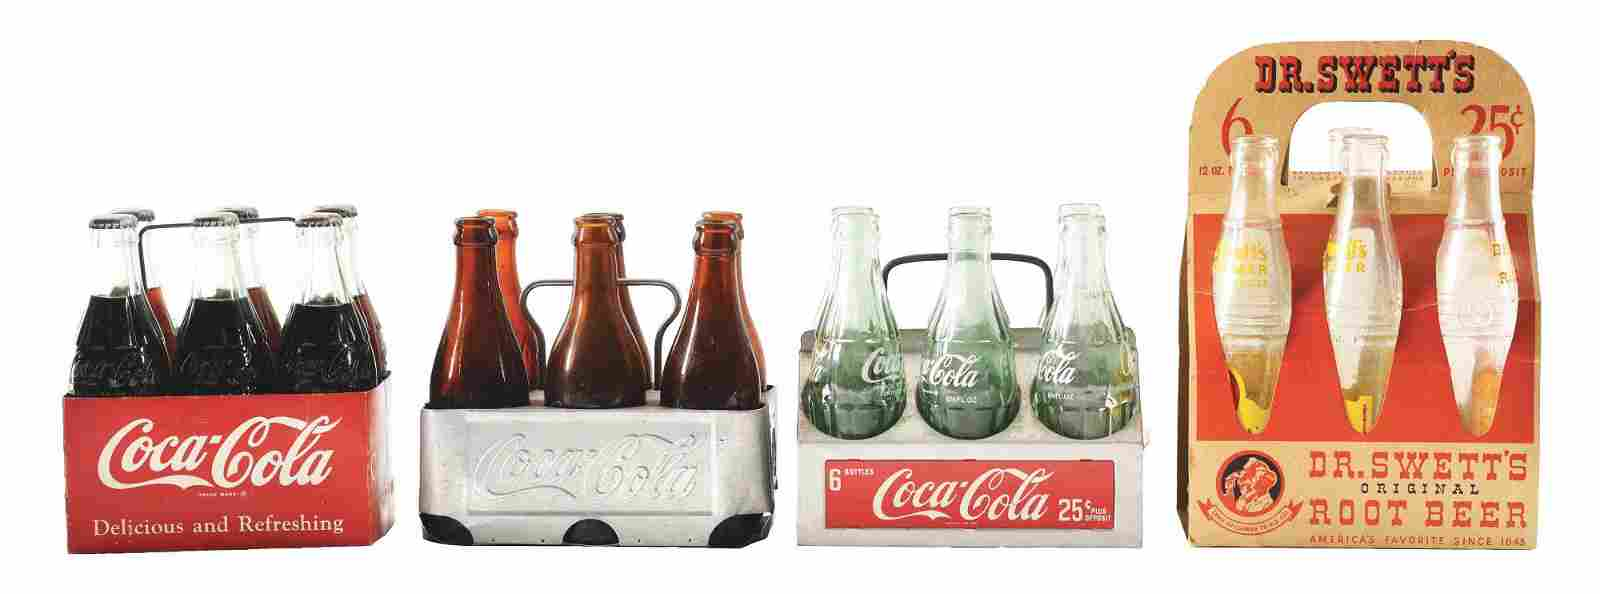 LOT OF 4: COCA-COLA AND DR. SWETT'S BOTTLE CARRIERS